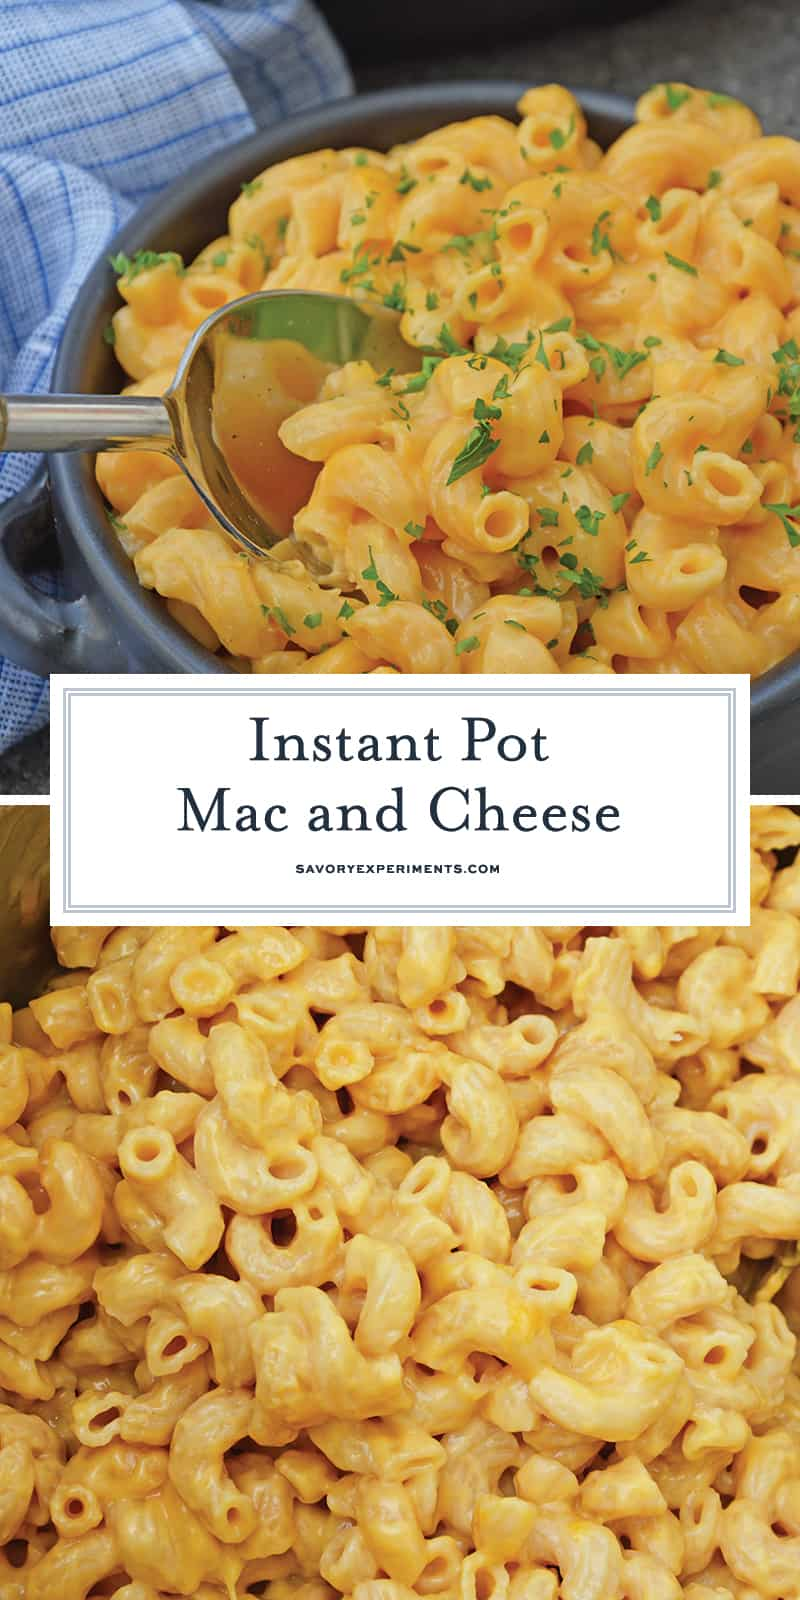 Of all of the Instant Pot recipes, this pressure cooker mac and cheese is the best! If you like homemade creamy mac and cheese, Instant Pot Mac and Cheese is for you! #pressurecookermacandcheese #instantpotrecipes #instantpotmacandcheese www.savoryexperiments.com